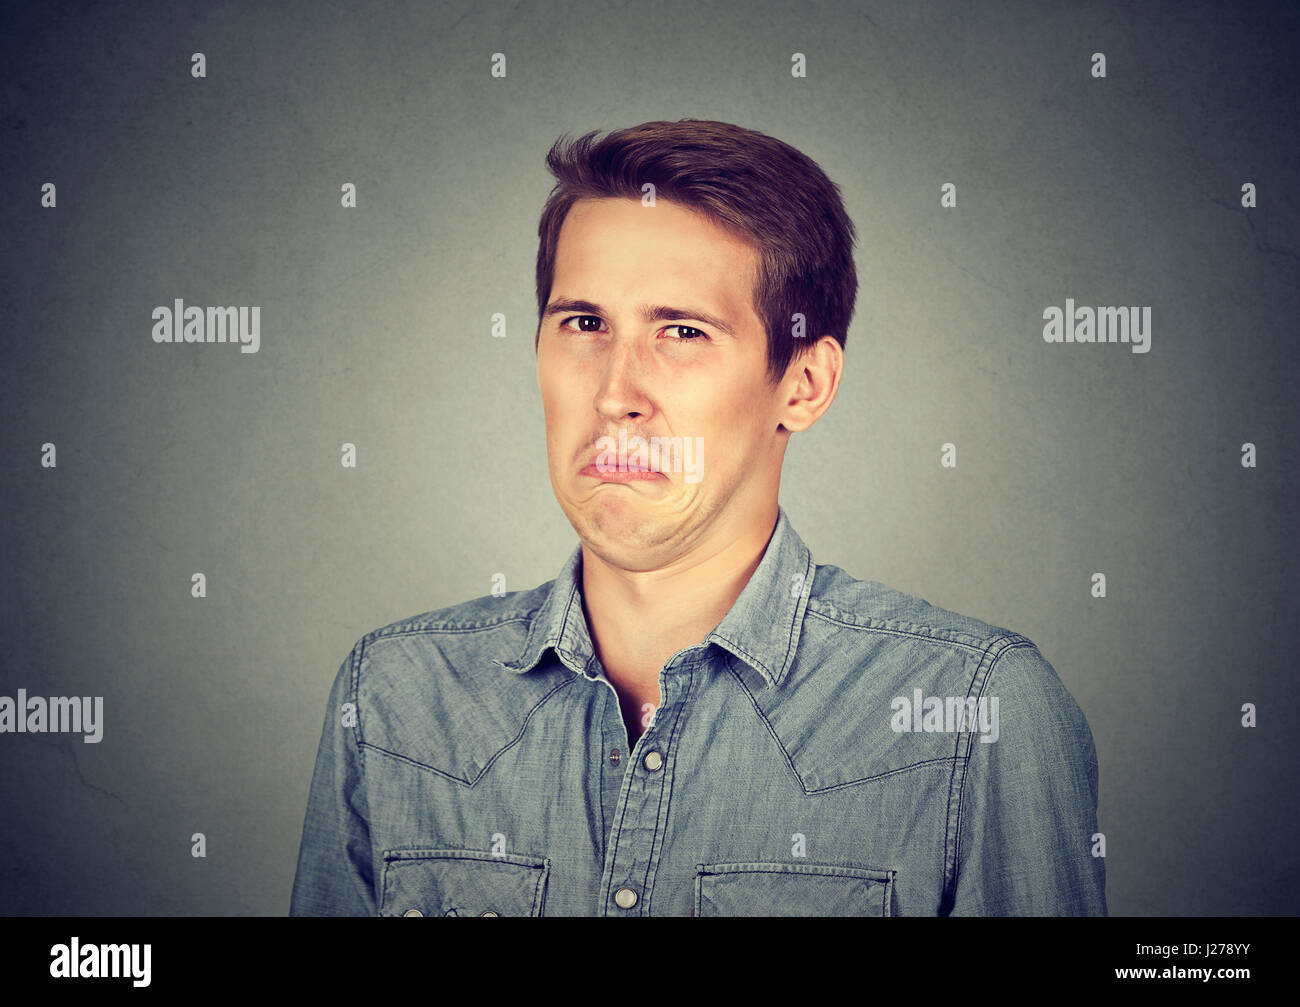 Grimace face clip art stock photo woman pulls a face in upset - Portrait Of A Disgusted Man Stock Image